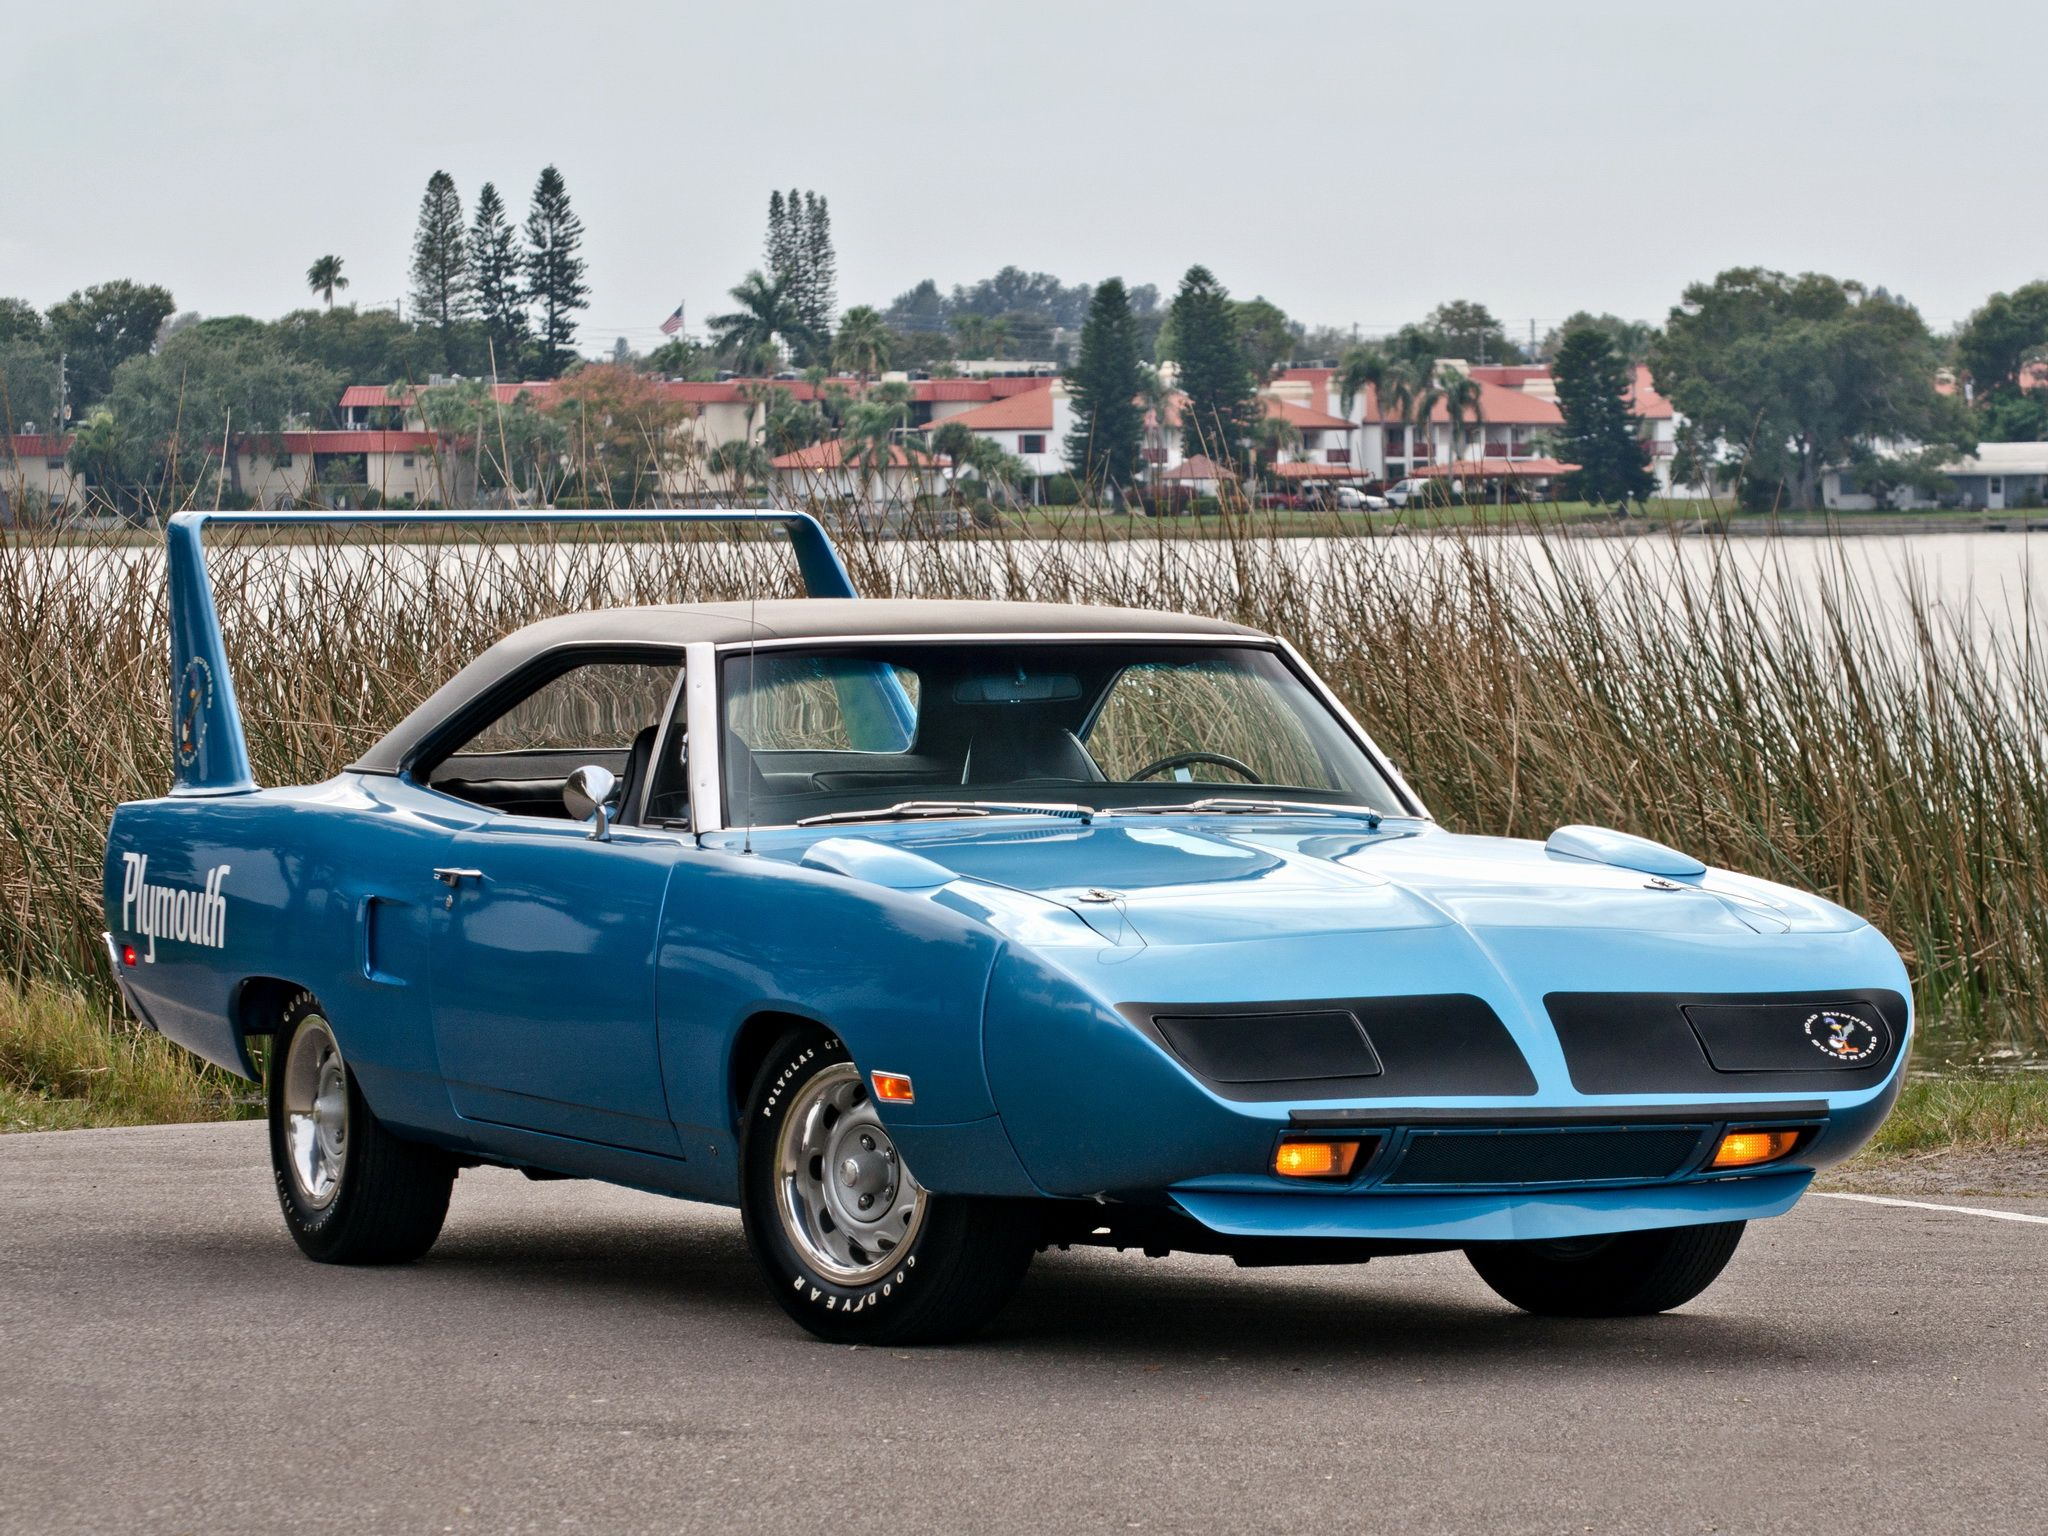 c543cba36f9b377f0ffc48500fe0cbf3 best 25 plymouth daytona ideas on pinterest plymouth superbird 1969 Dodge Super Bee at bakdesigns.co